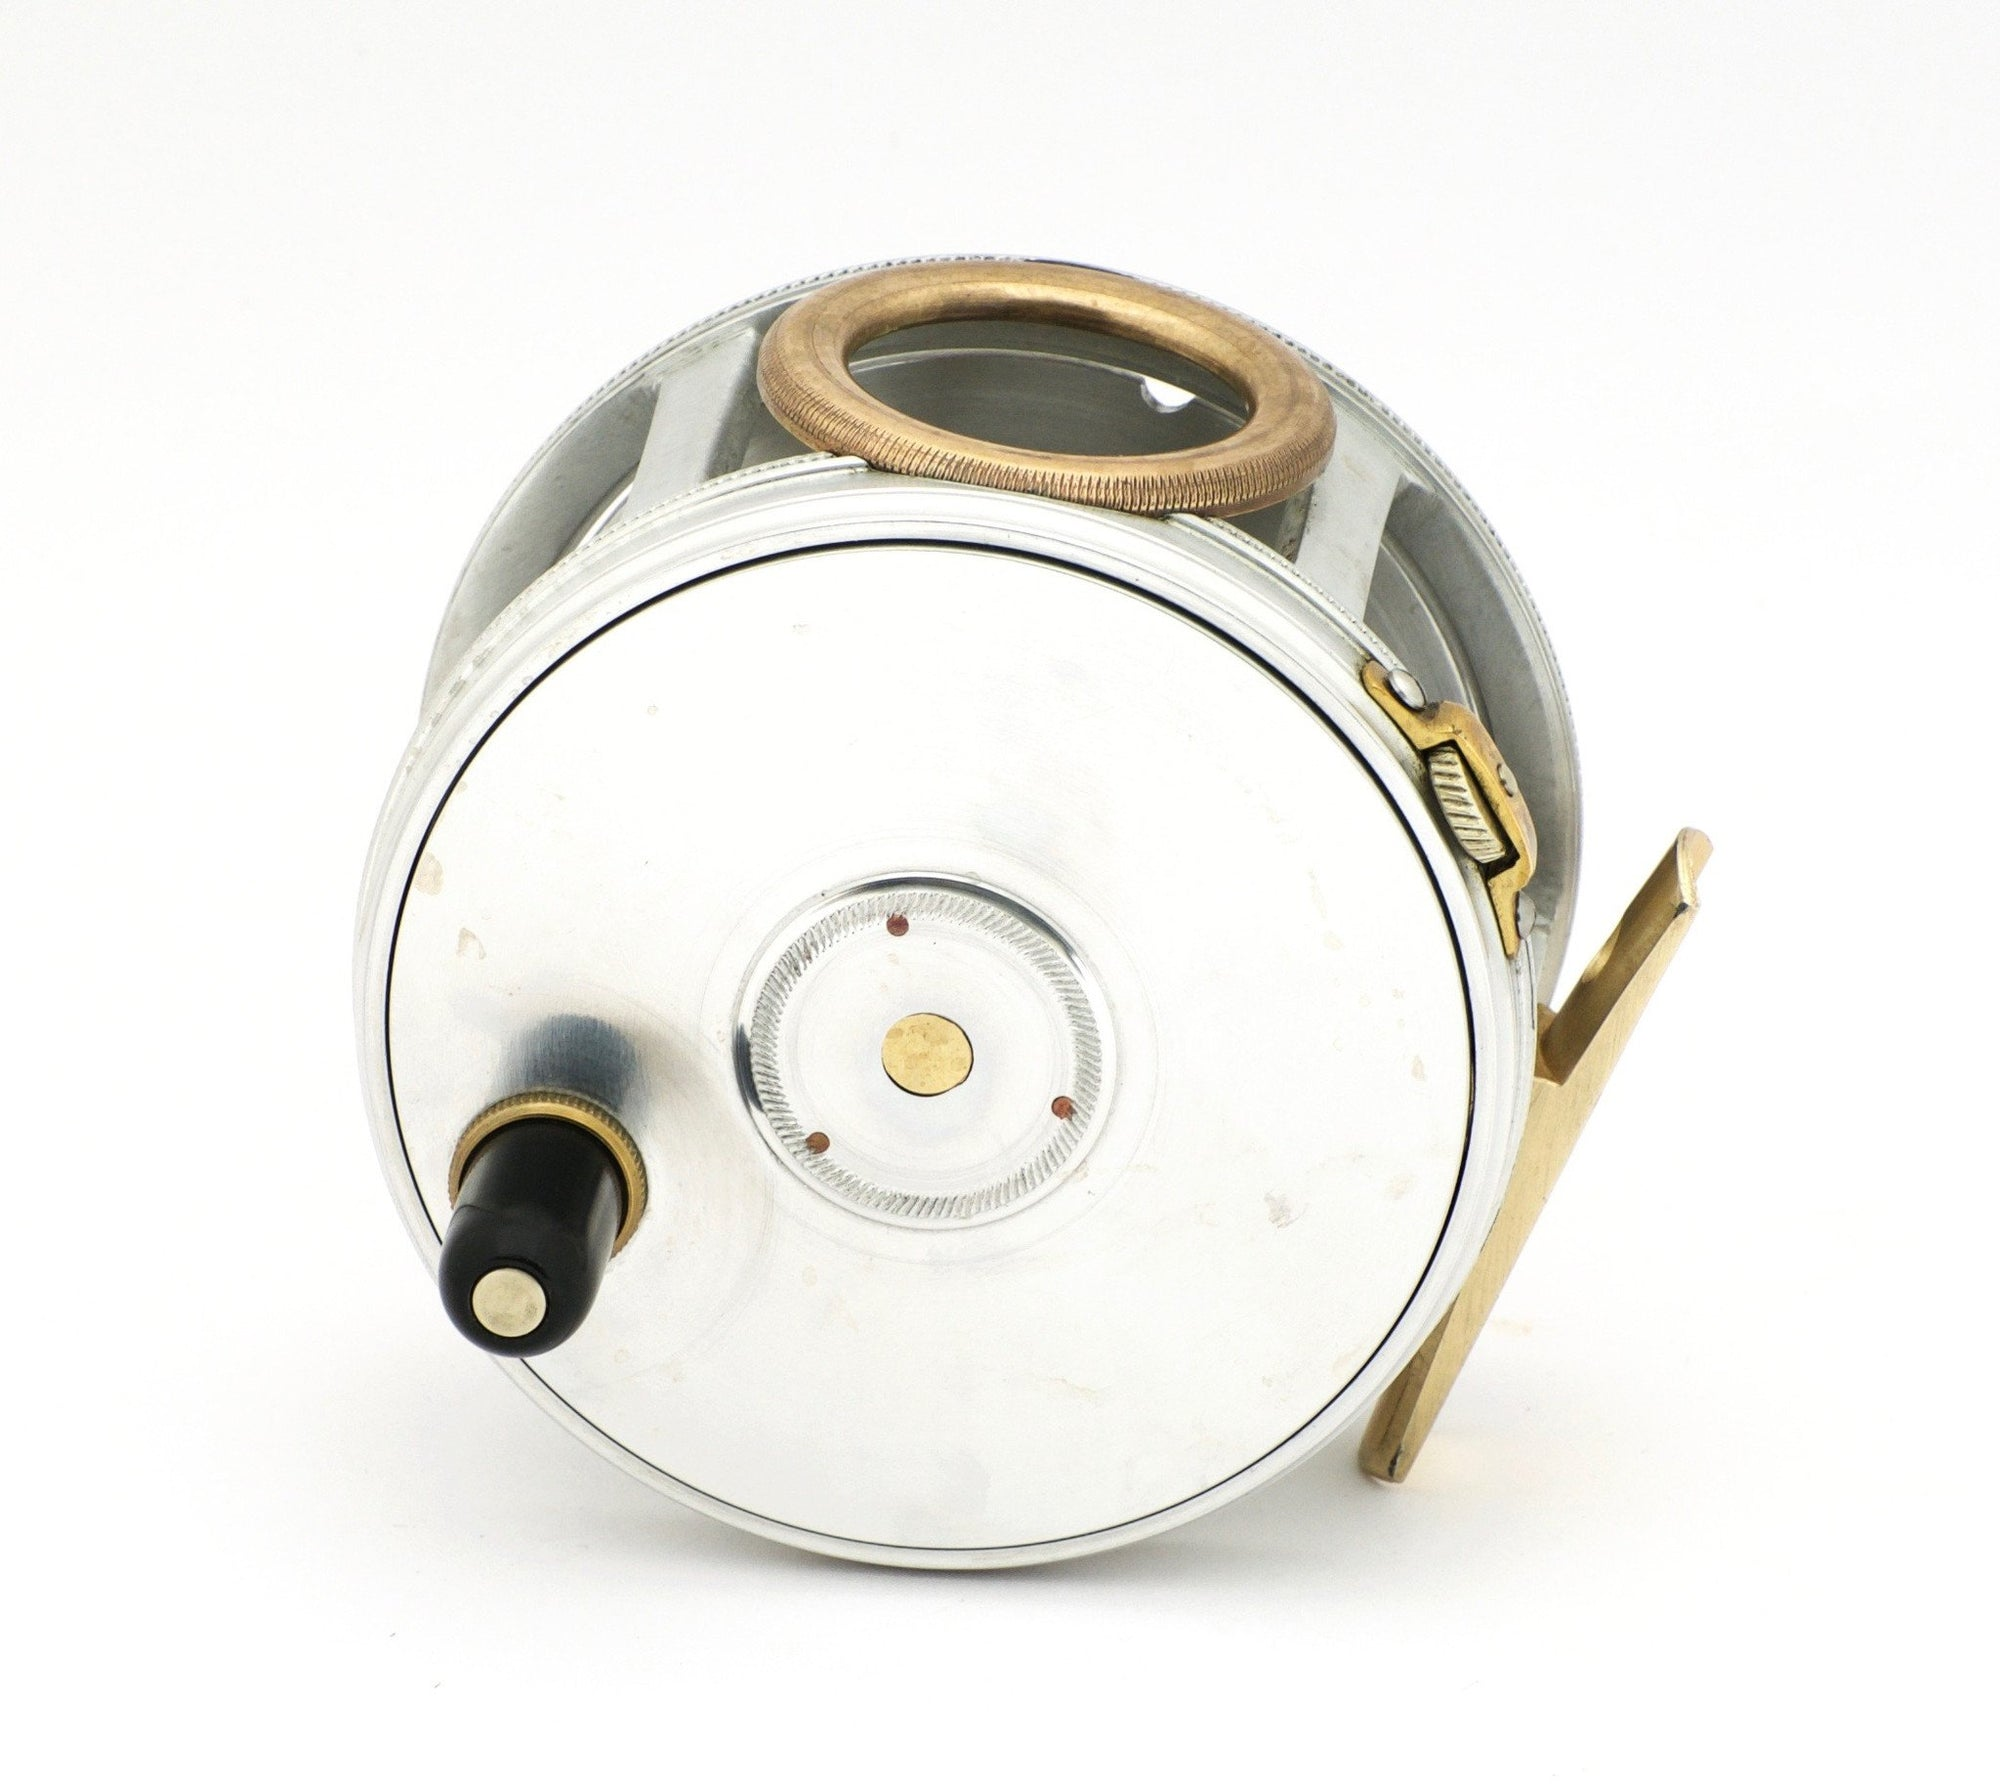 "Henshaw, Chris - 3 3/4"" 1912 Perfect Fly Reel"